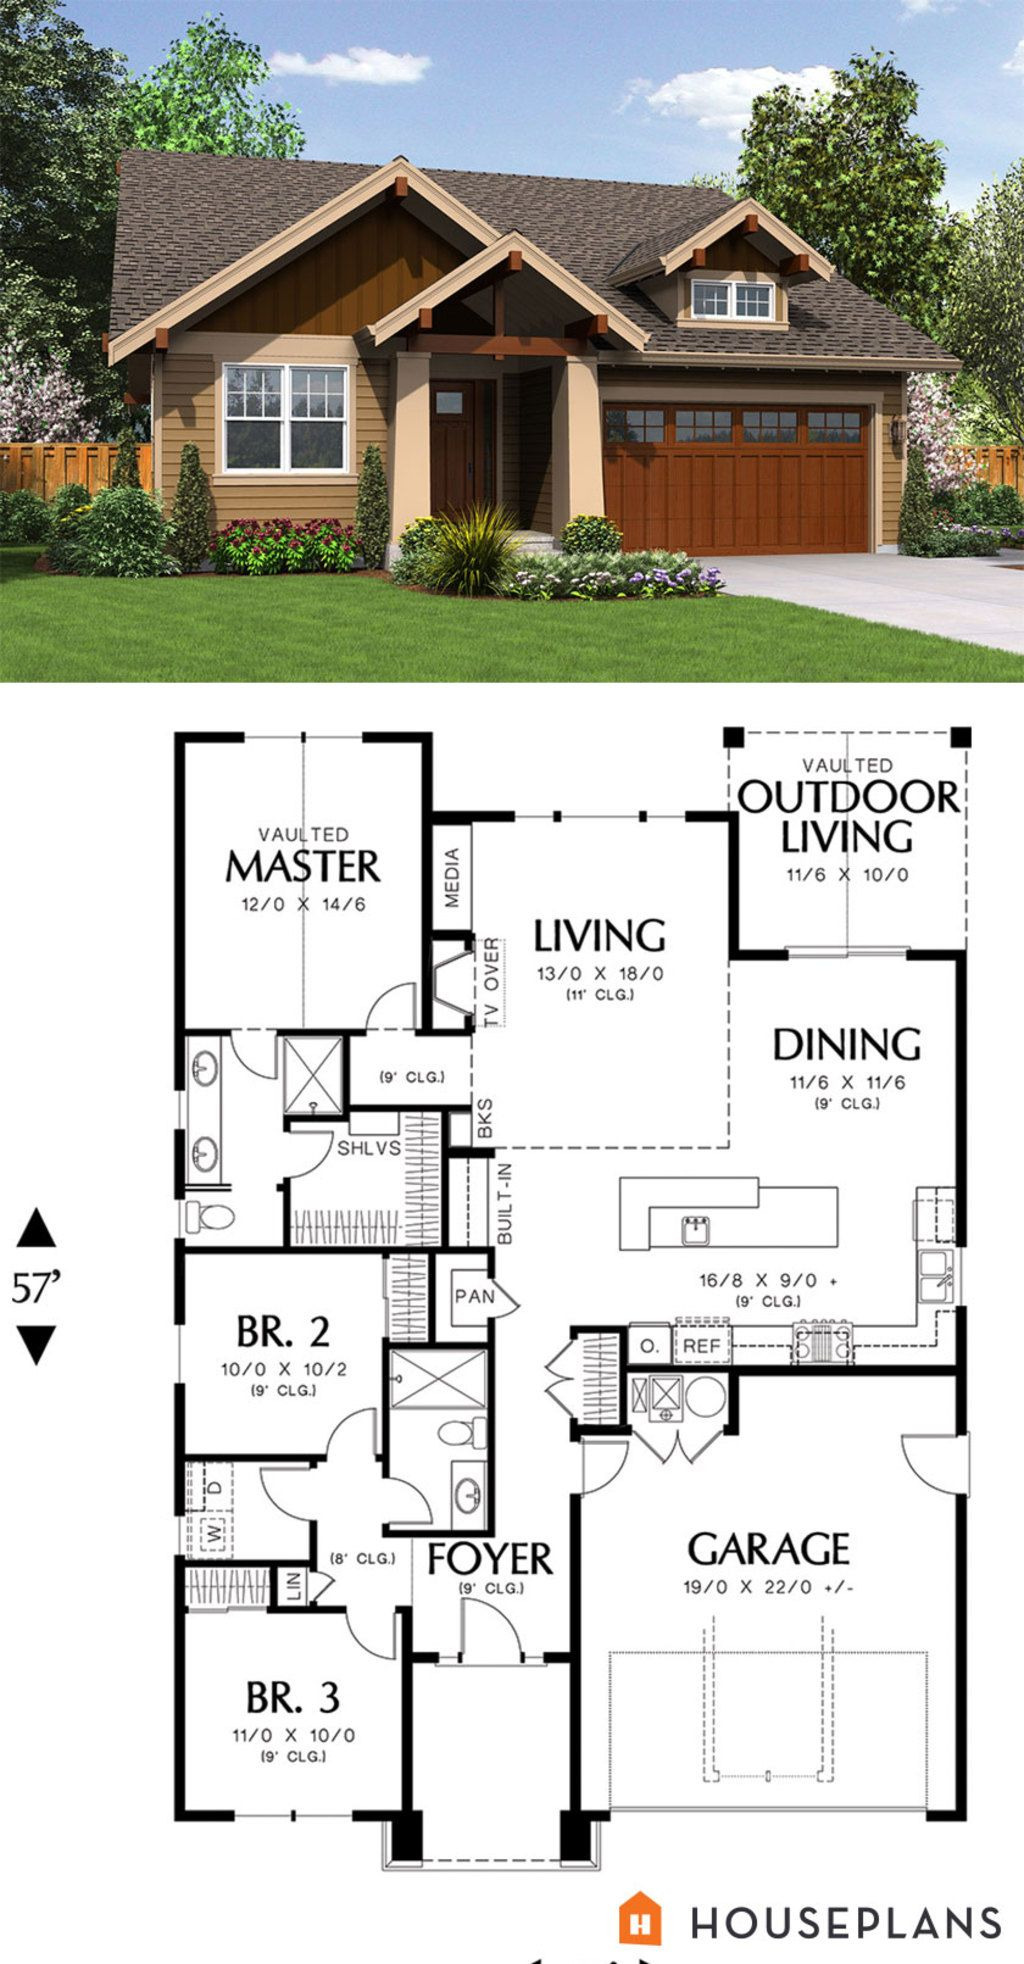 House Plans Craftsman Style Bungalow New Craftsman Style House Plan 3 Beds 2 Baths 1529 Sq Ft Plan